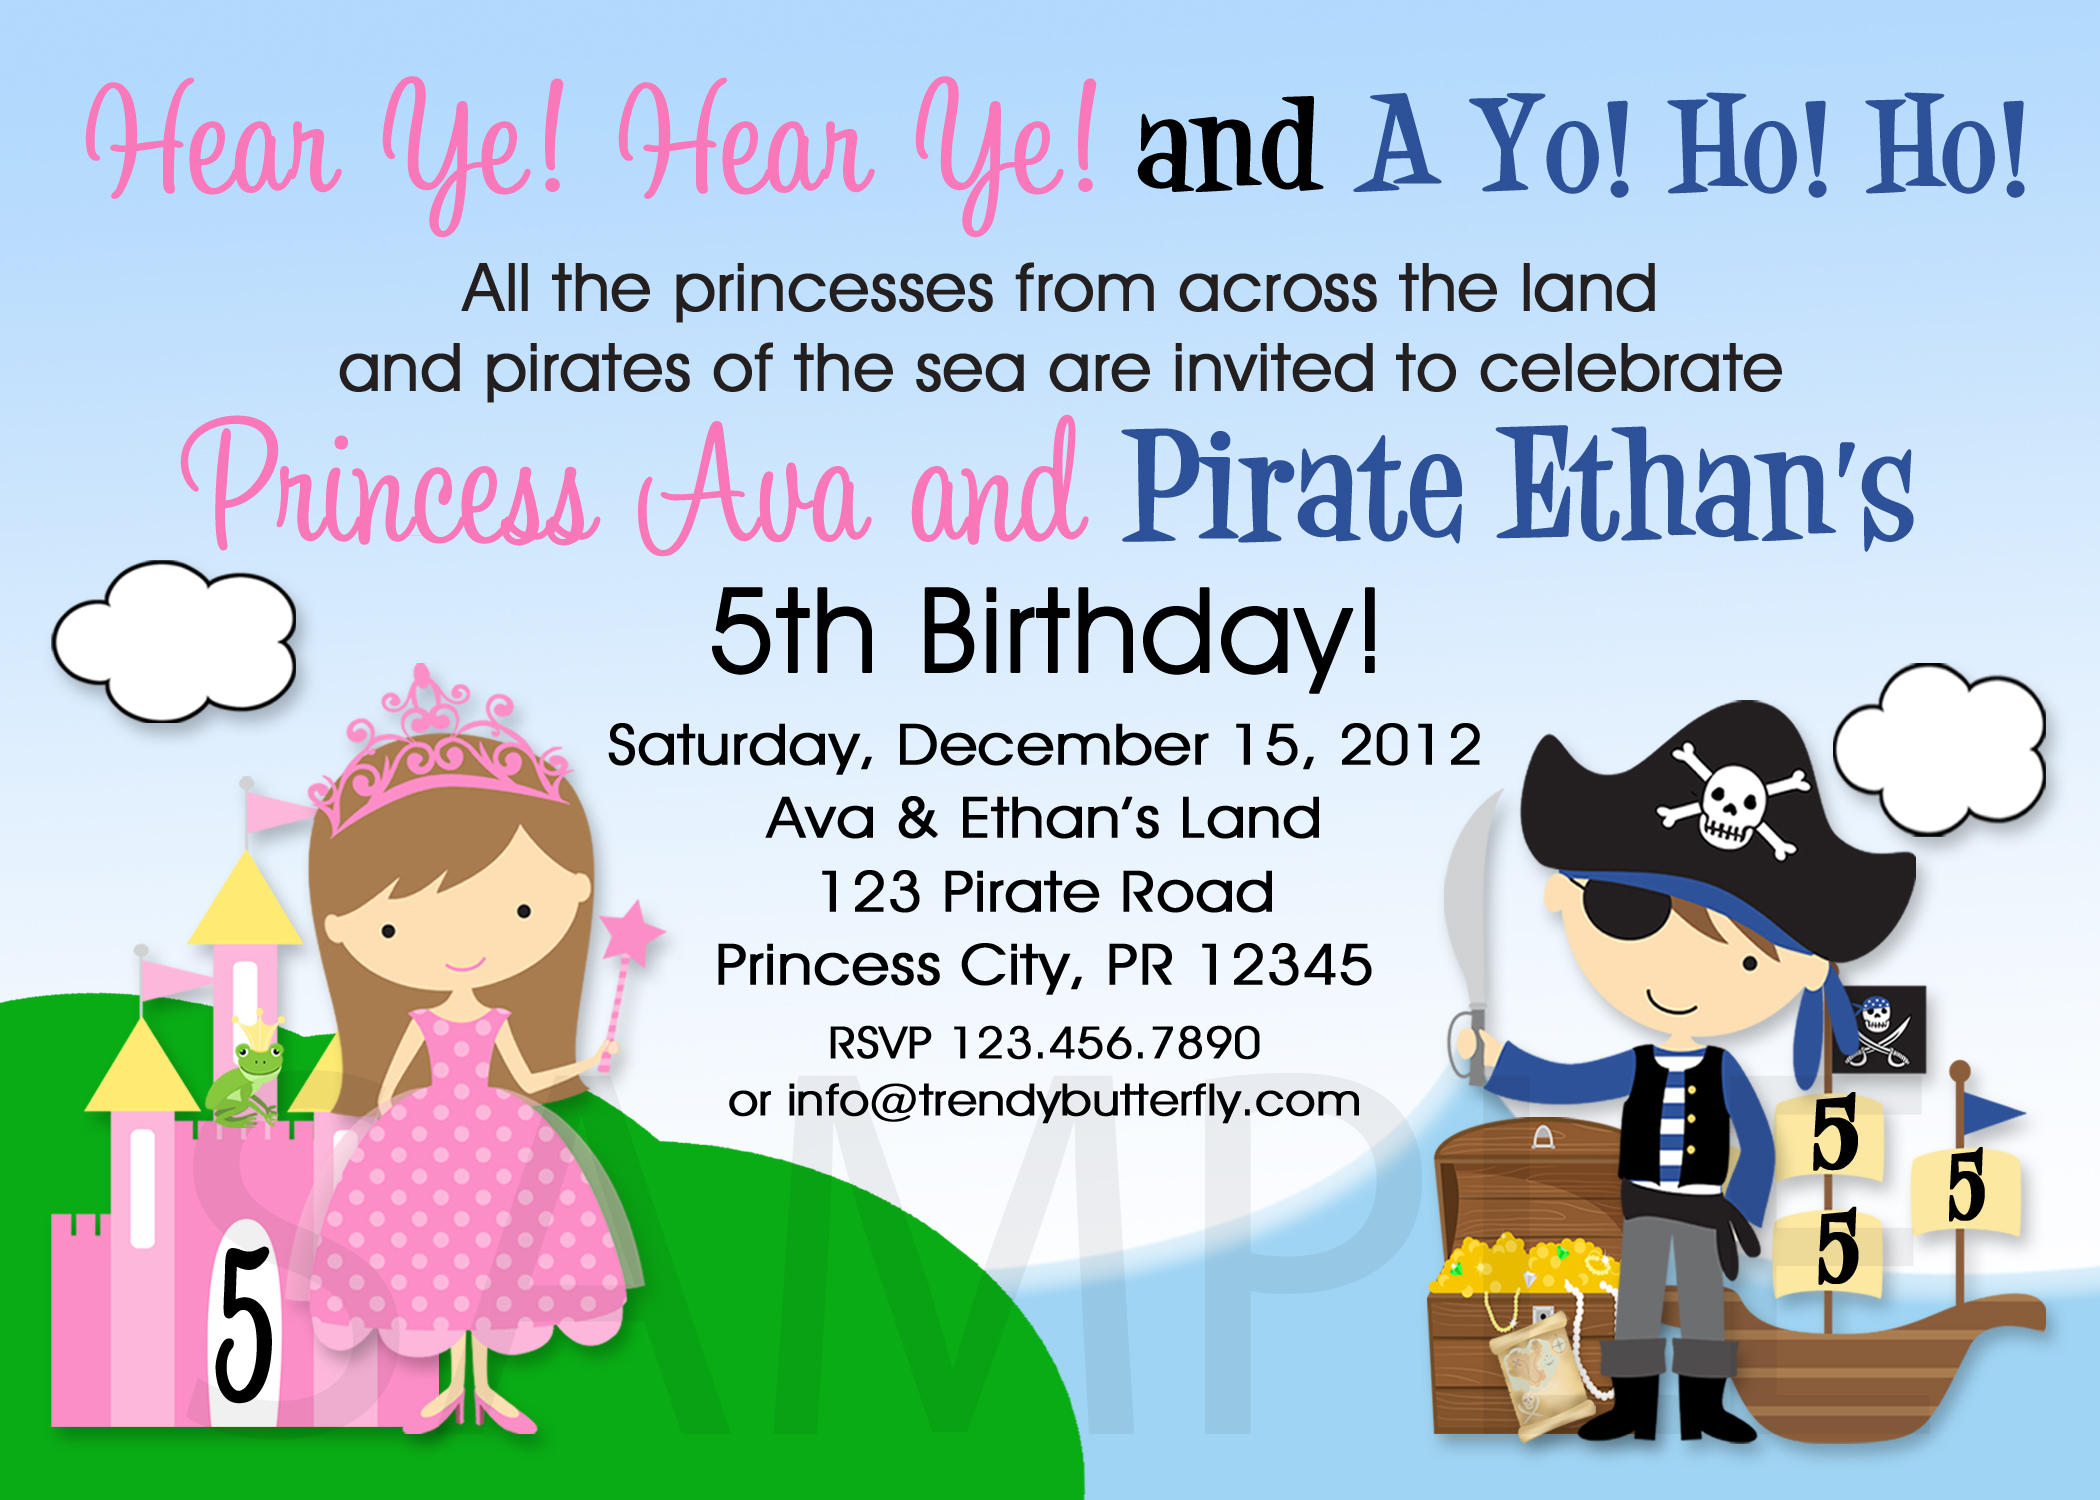 Printable Birthday Invitations, Twins Siblings Pirate Party Invites